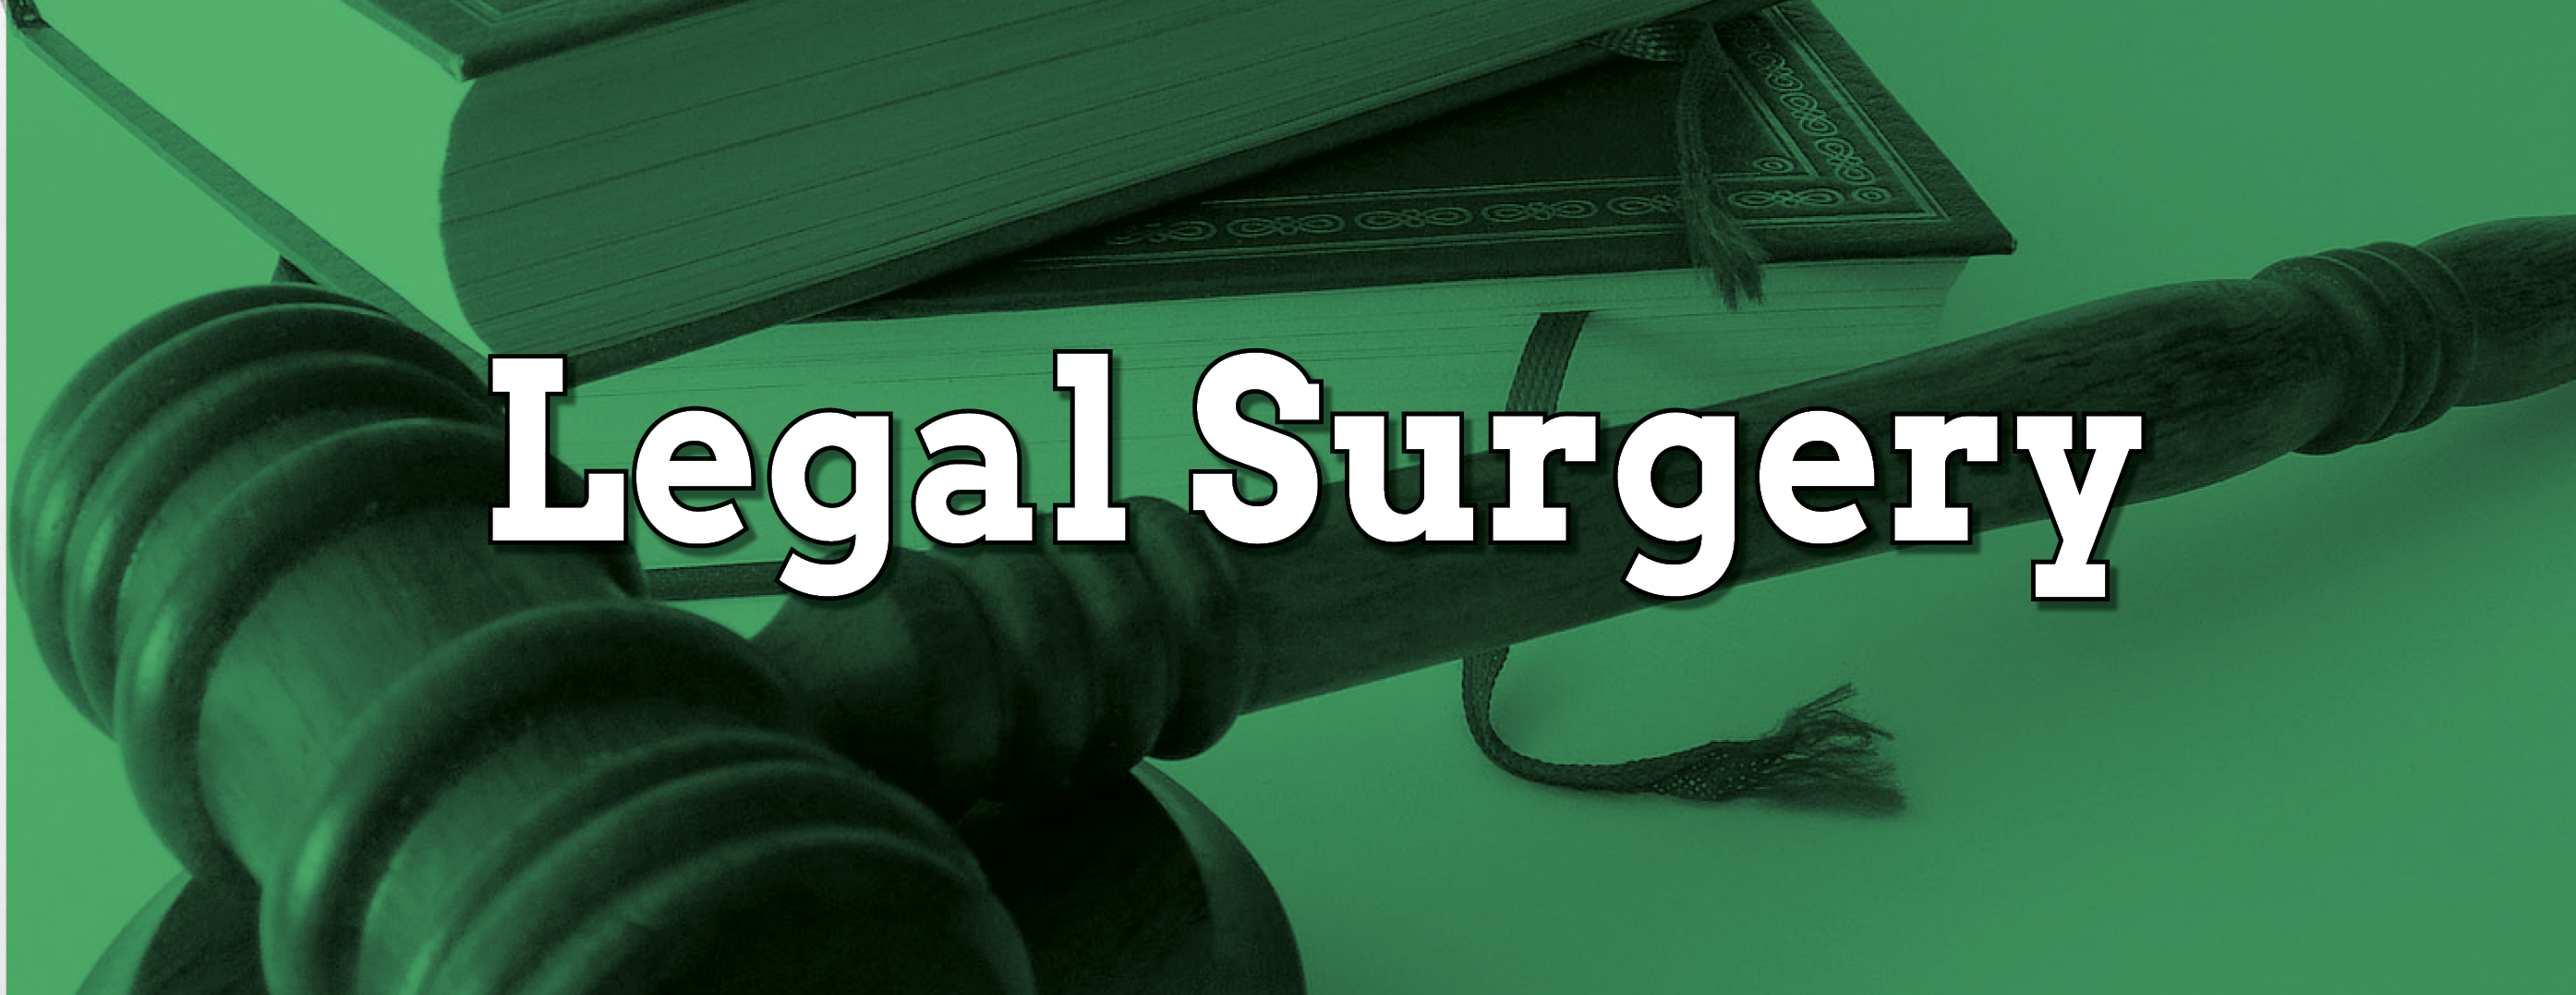 Legal and Police Advice Surgeries